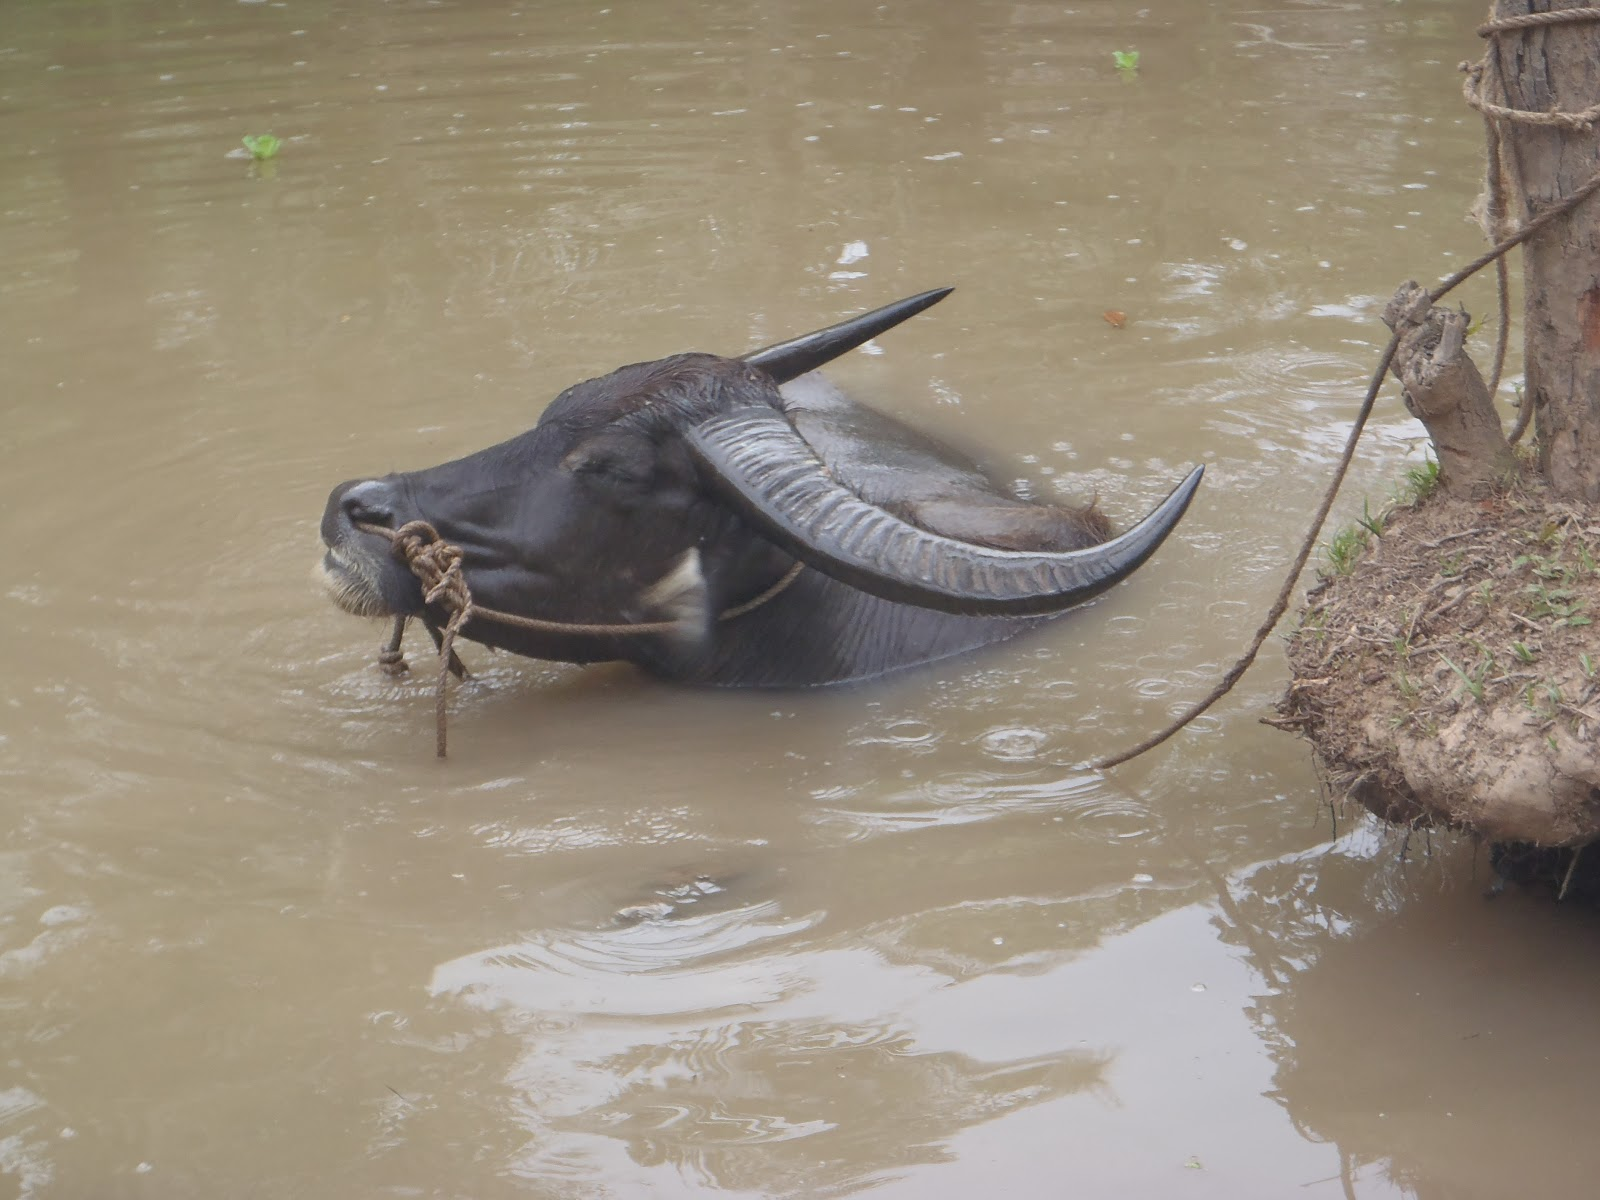 Vietnam by Tiger Cam: Water Buffalo (and other domestic animals)